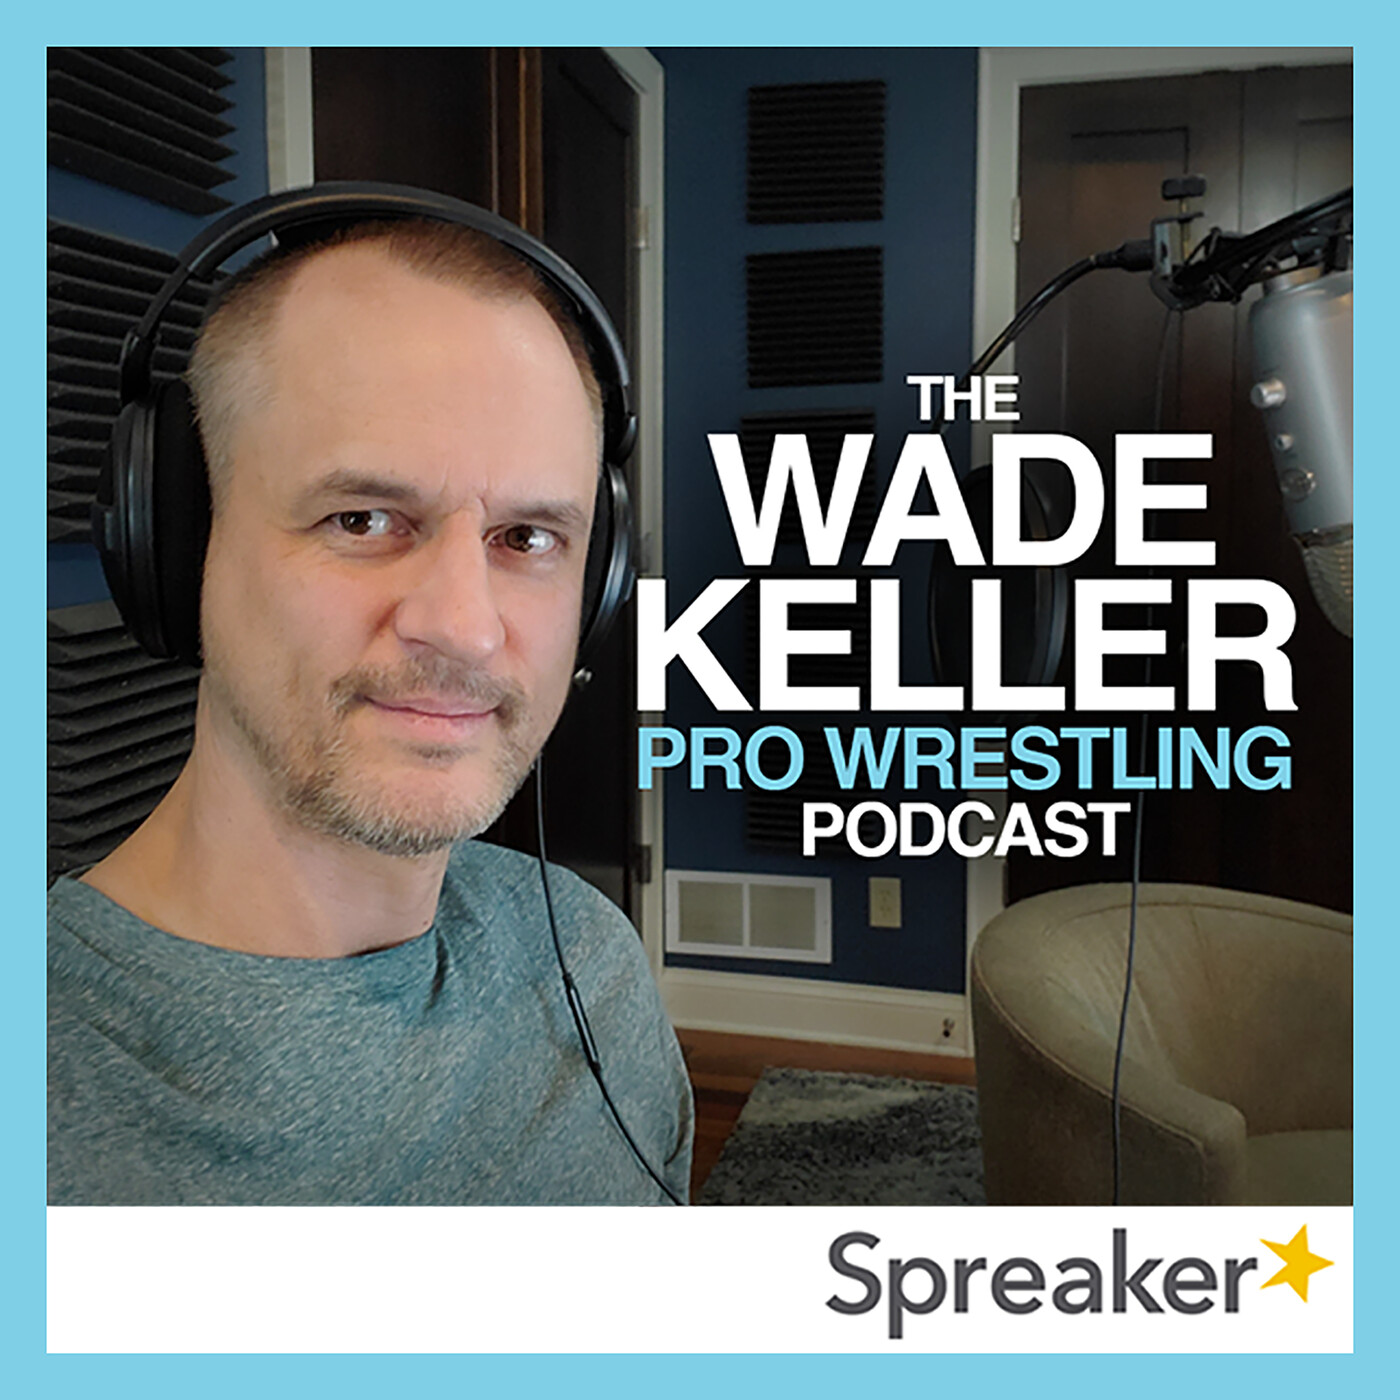 WKPWP – WKPWP PPV Preview - WWE Hell in a Cell: Sam Roberts joins Wade for in-depth preview of Hell in a Cell matc